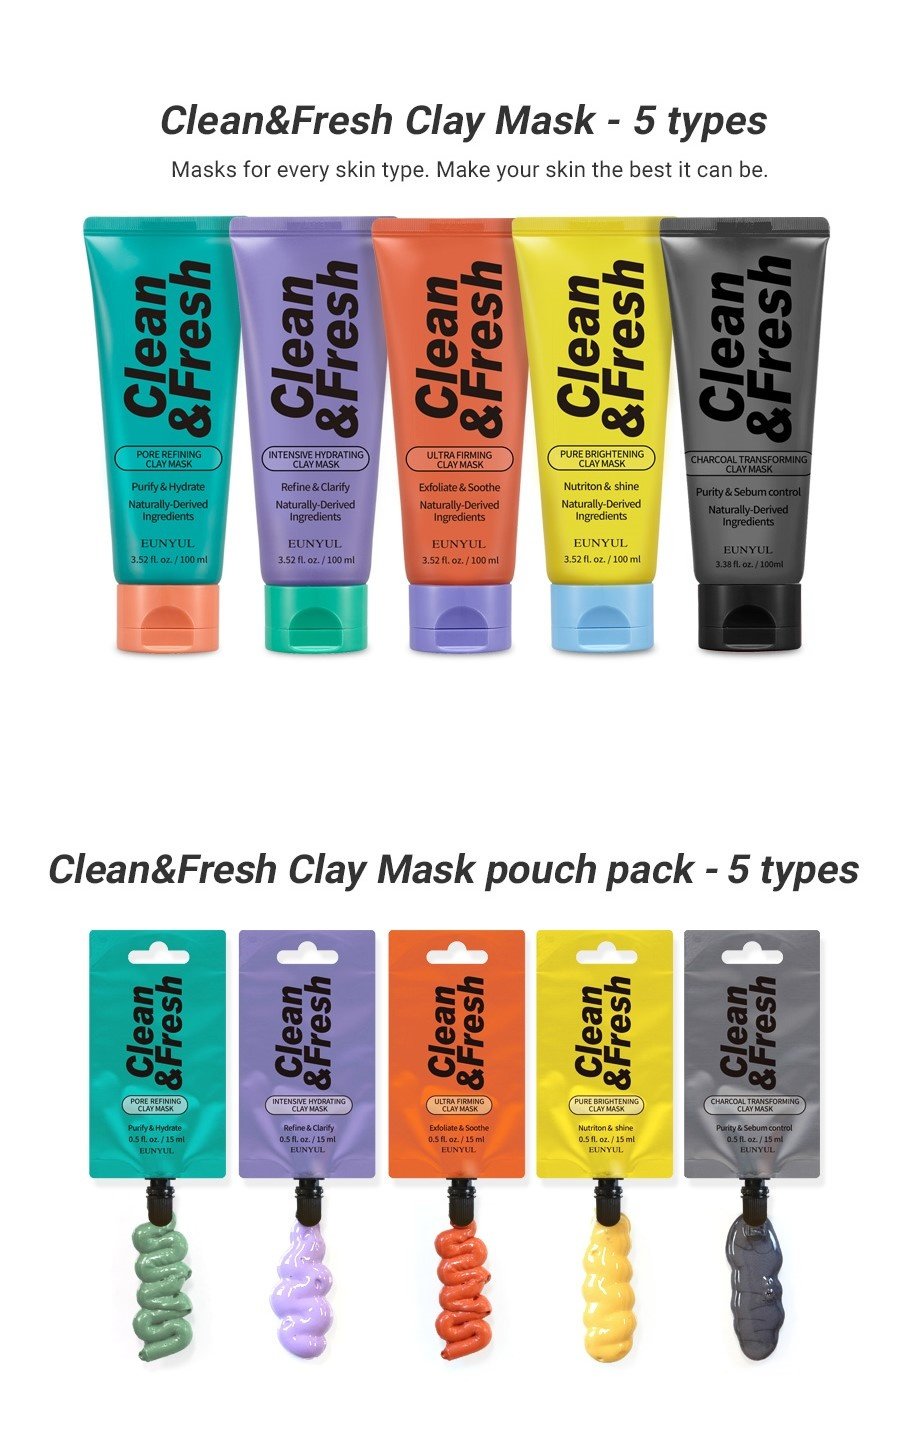 Clean & Fresh Clay Mask Pouch Pack - Charcoal Transforming-5